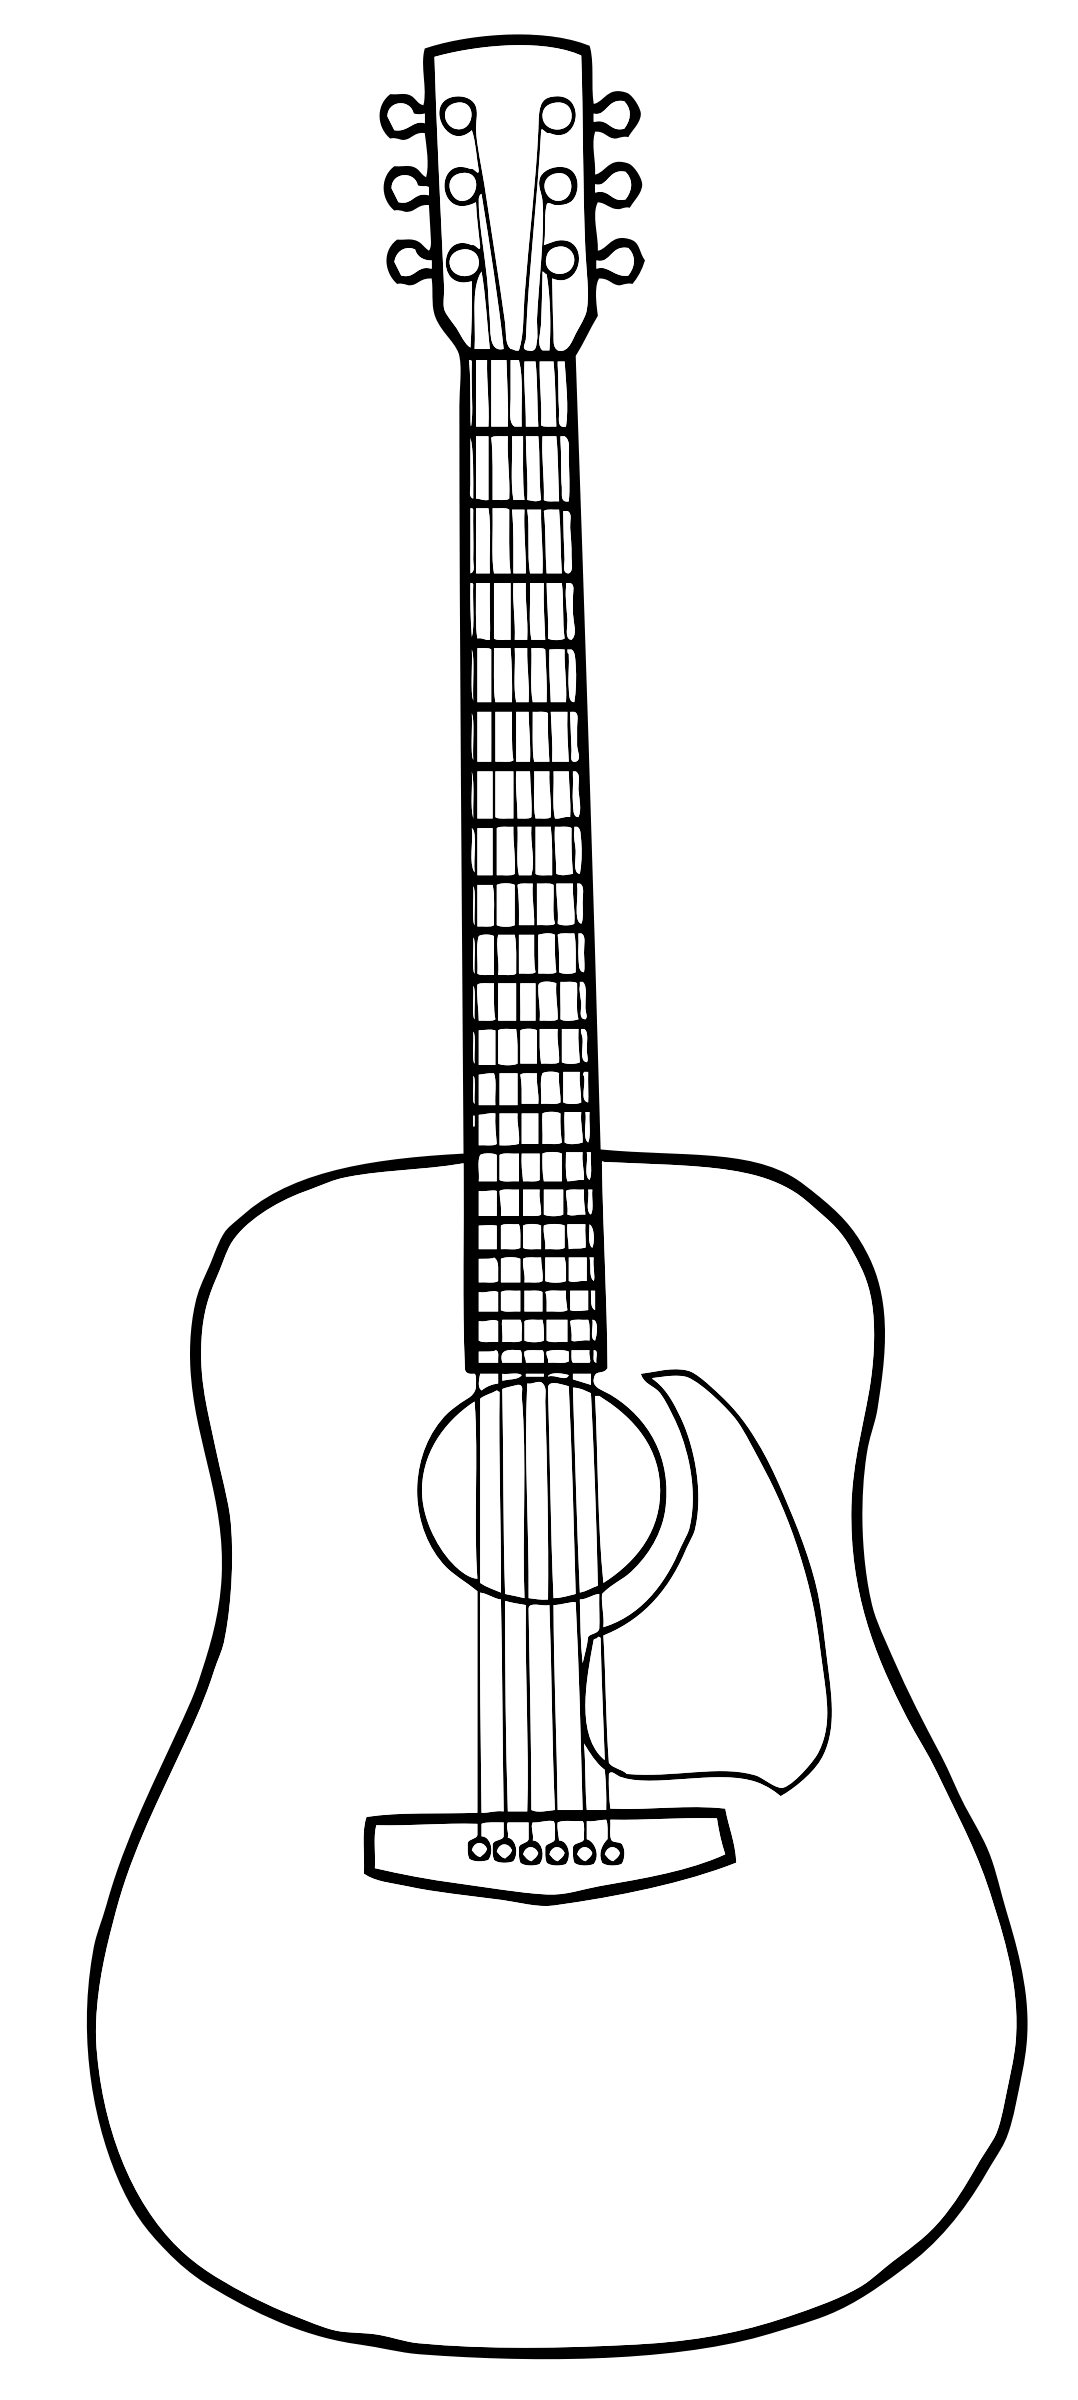 Guitar Outline Cliparts - Cliparts Zone clip royalty free